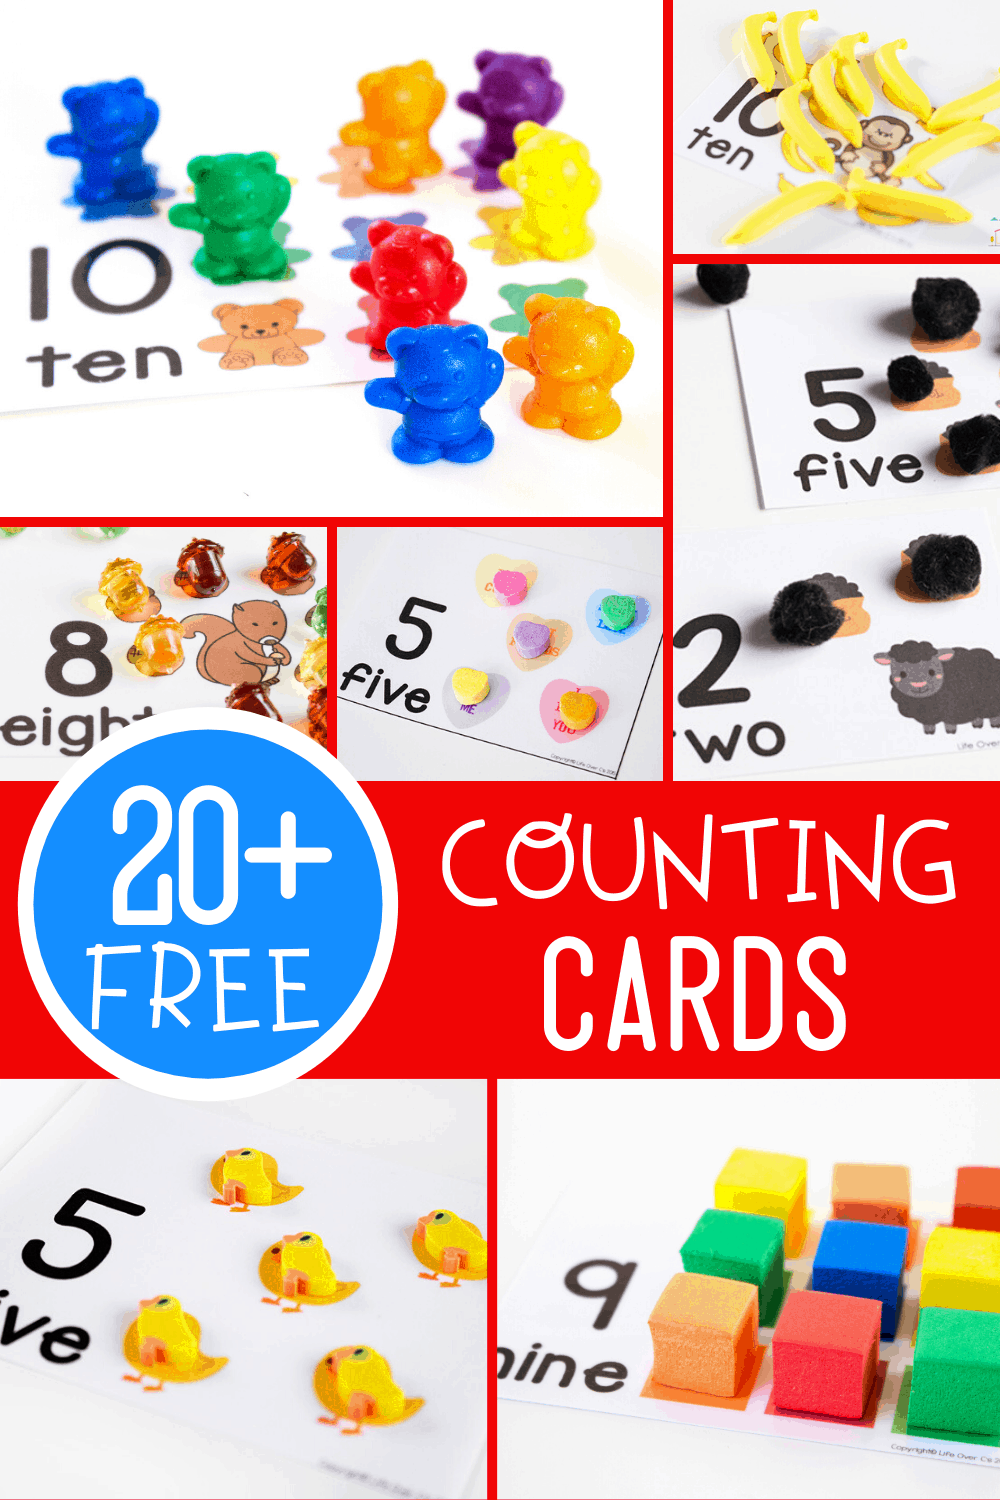 Free printable counting cards for preschool and kindergarten. Use toys and common math manipulatives to count to 10 with these one-to-one correspondence counting activities.